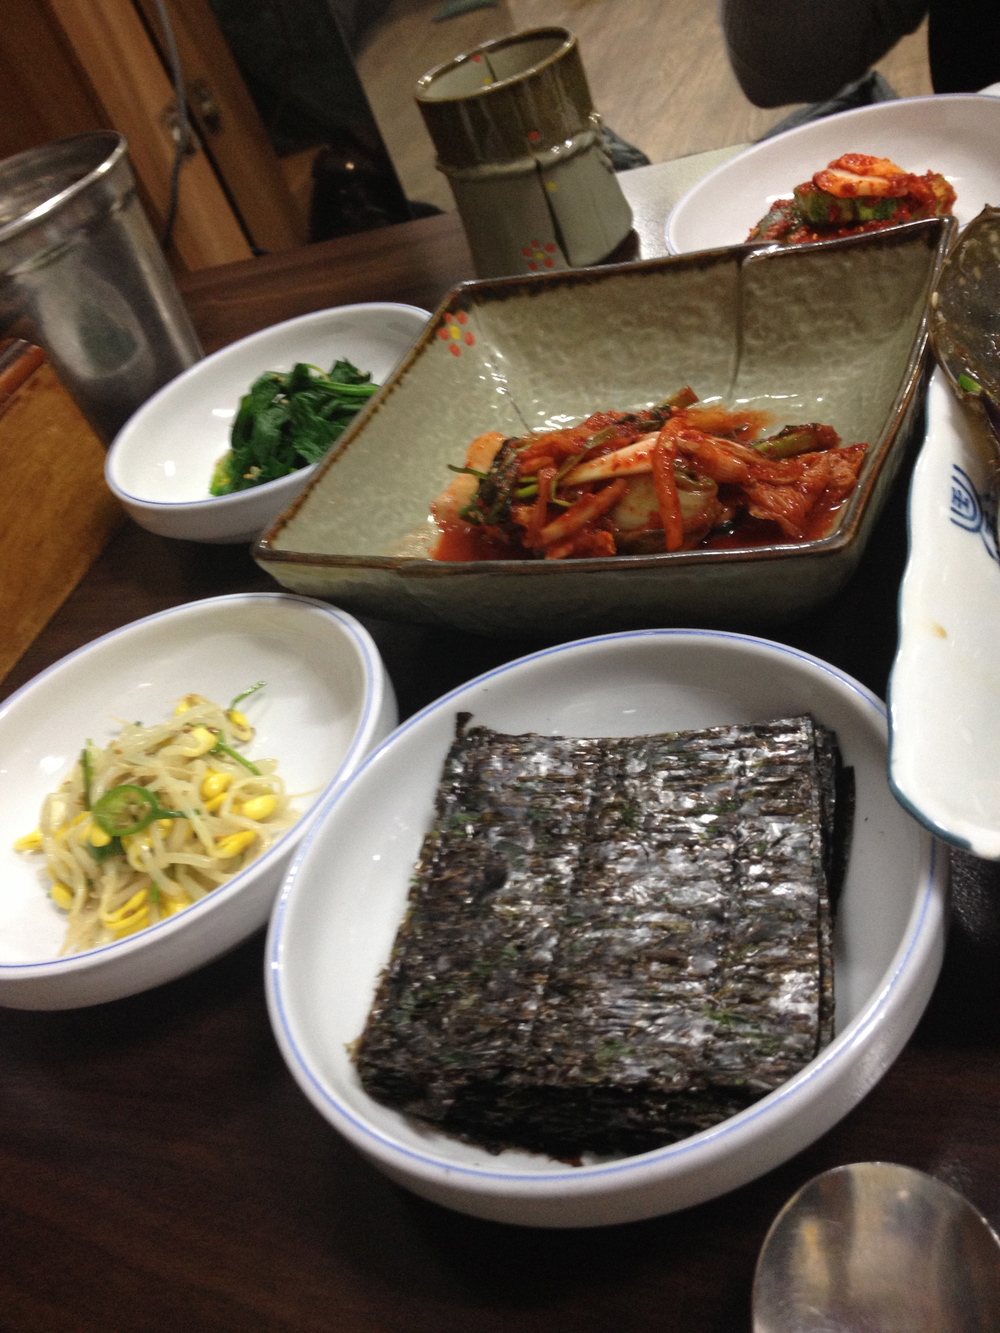 They also have regular unseasoned dried seaweed along with other simple side dishes.